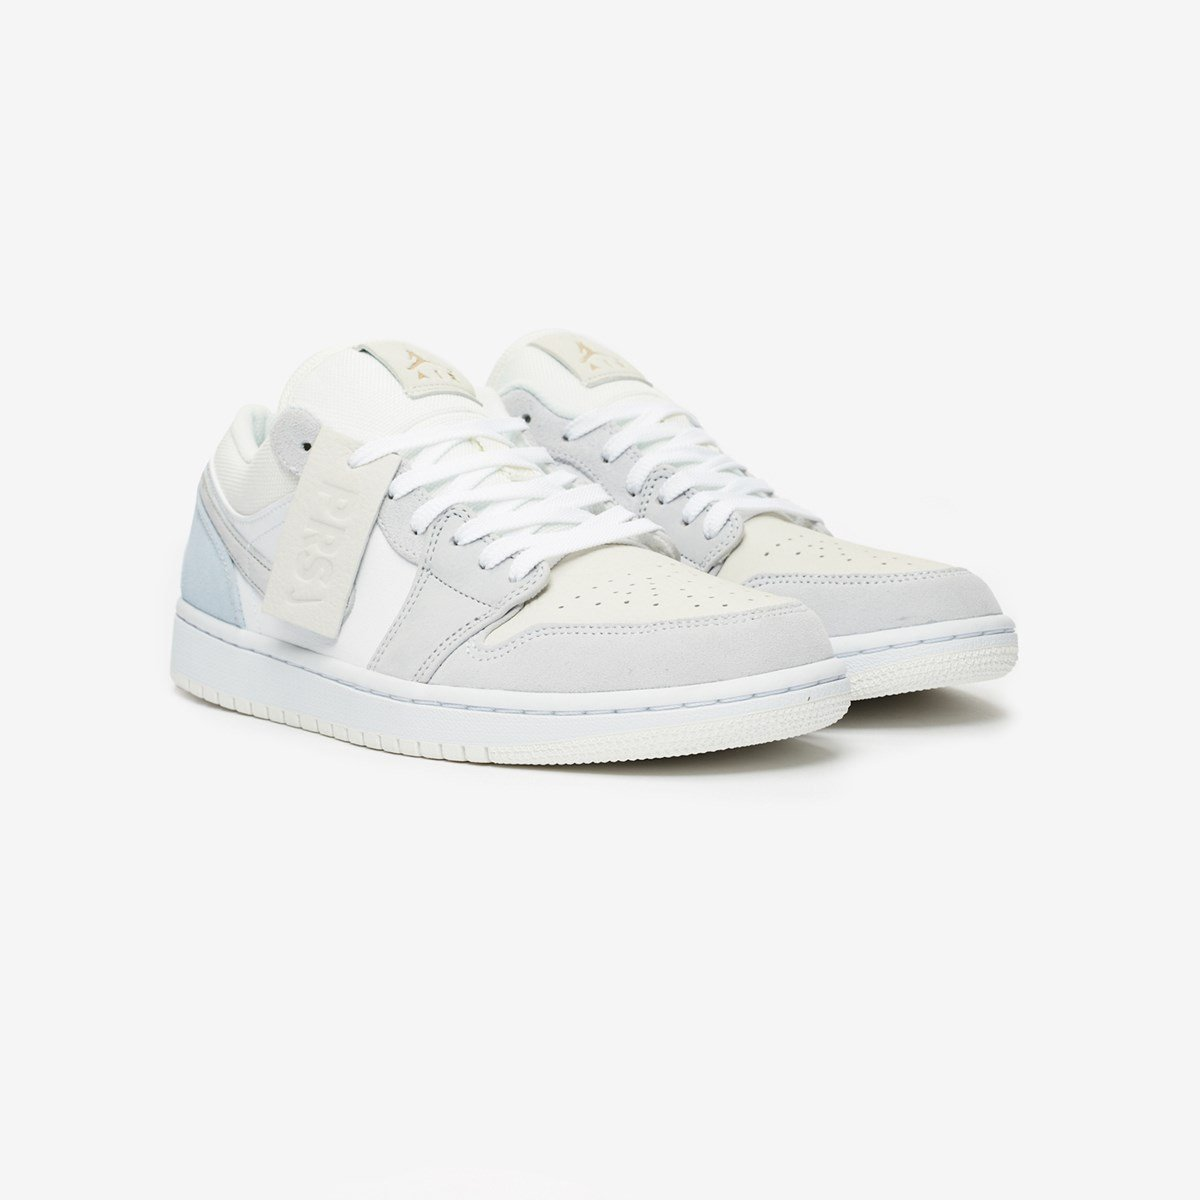 Jordan Brand Air Jordan 1 Low Cv3043 100 Sneakersnstuff